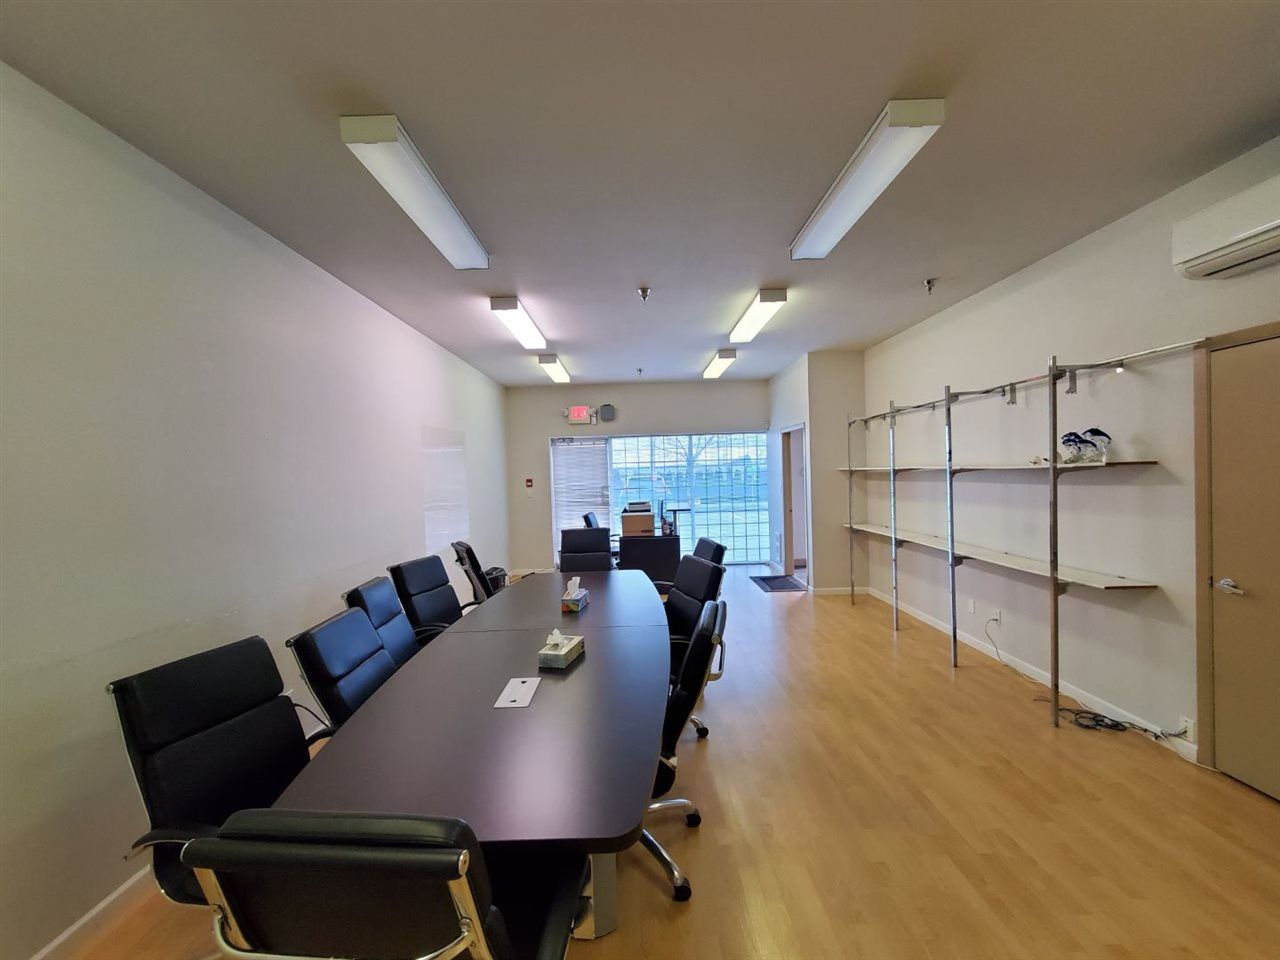 Main Photo: 125 13988 MAYCREST WAY in Richmond: East Cambie Industrial for lease : MLS®# C8029762